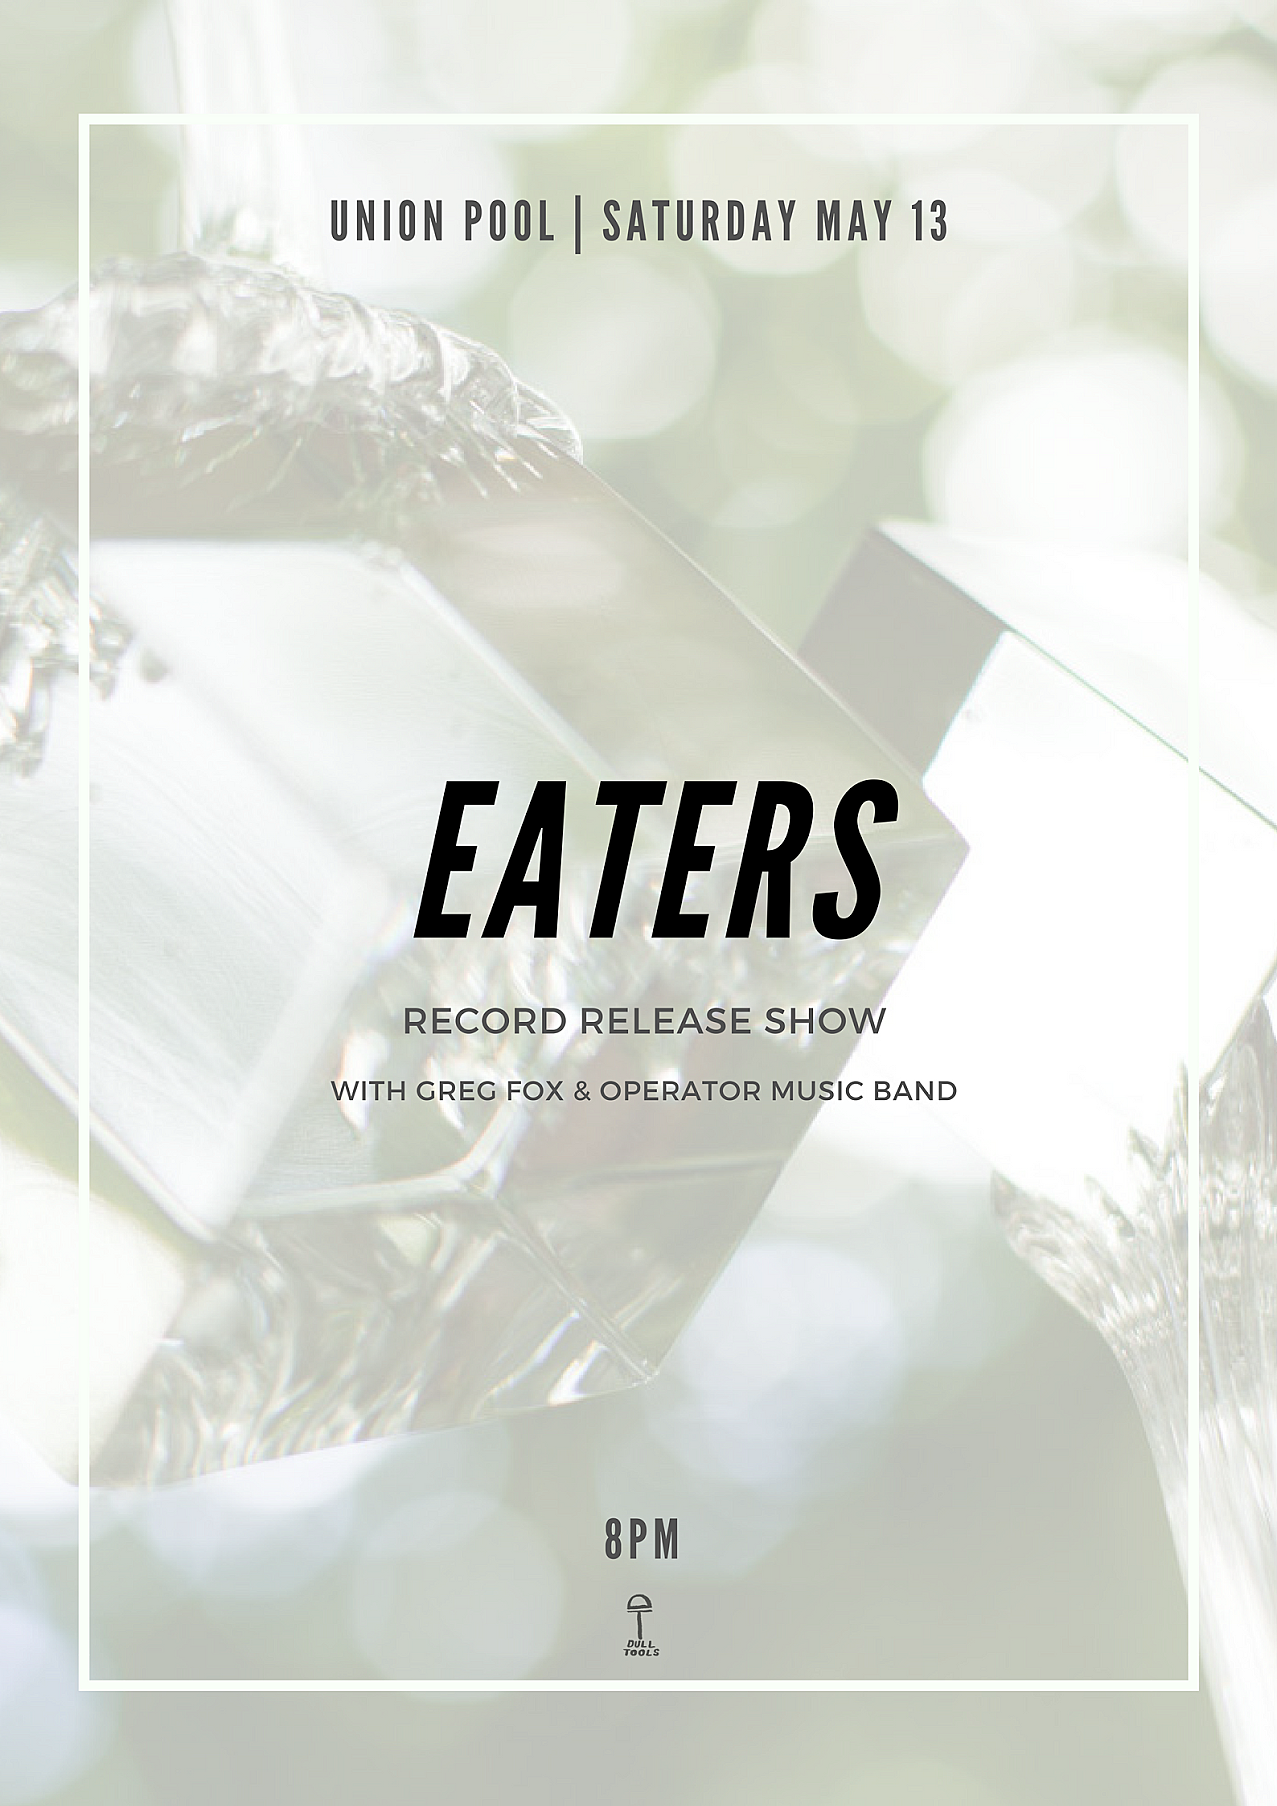 eaters-flyer